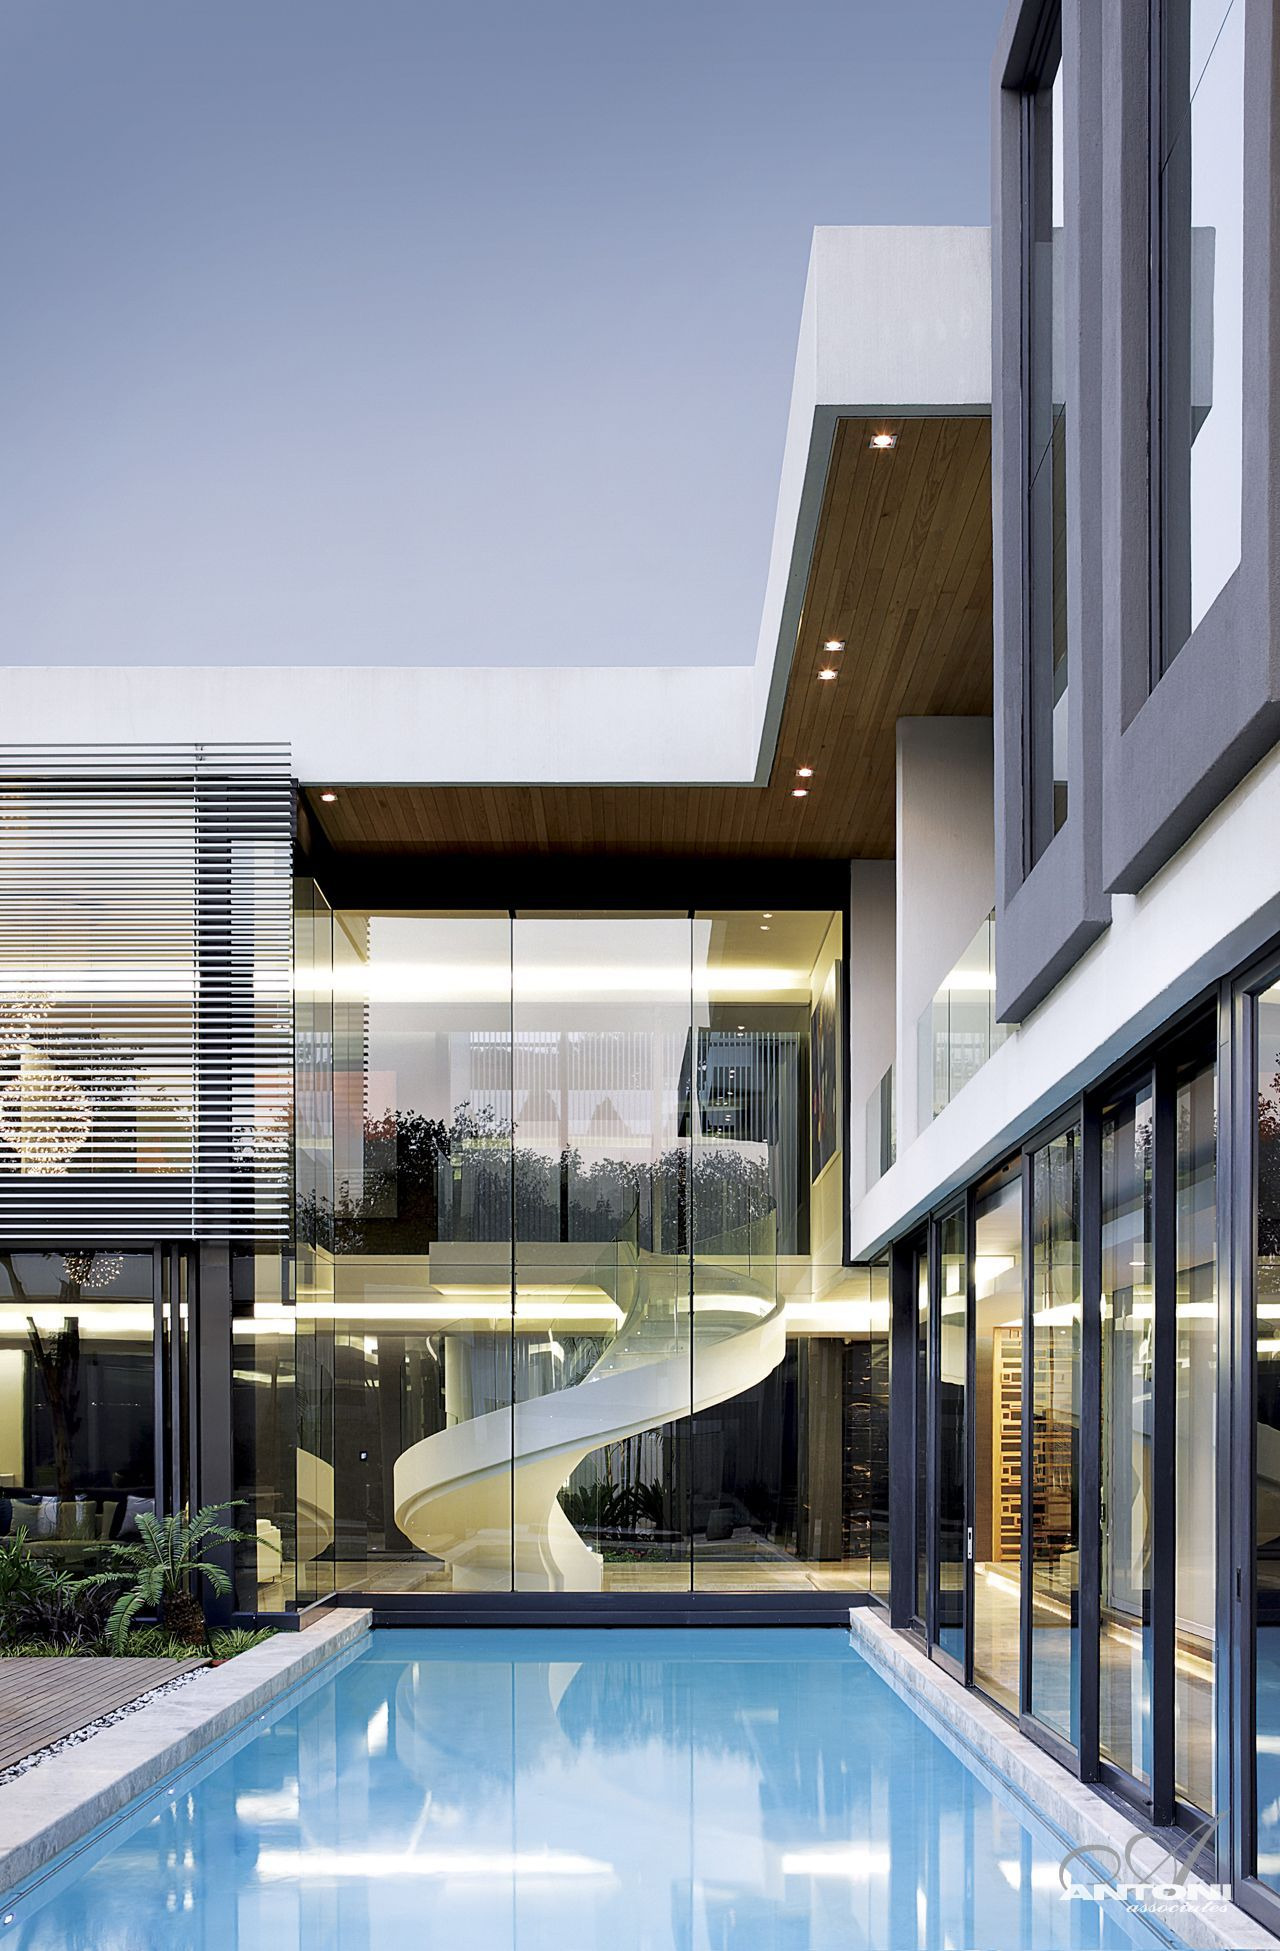 The Best Mansion Ever Luxury Modern Mansion with Perfect Interiors by Saota